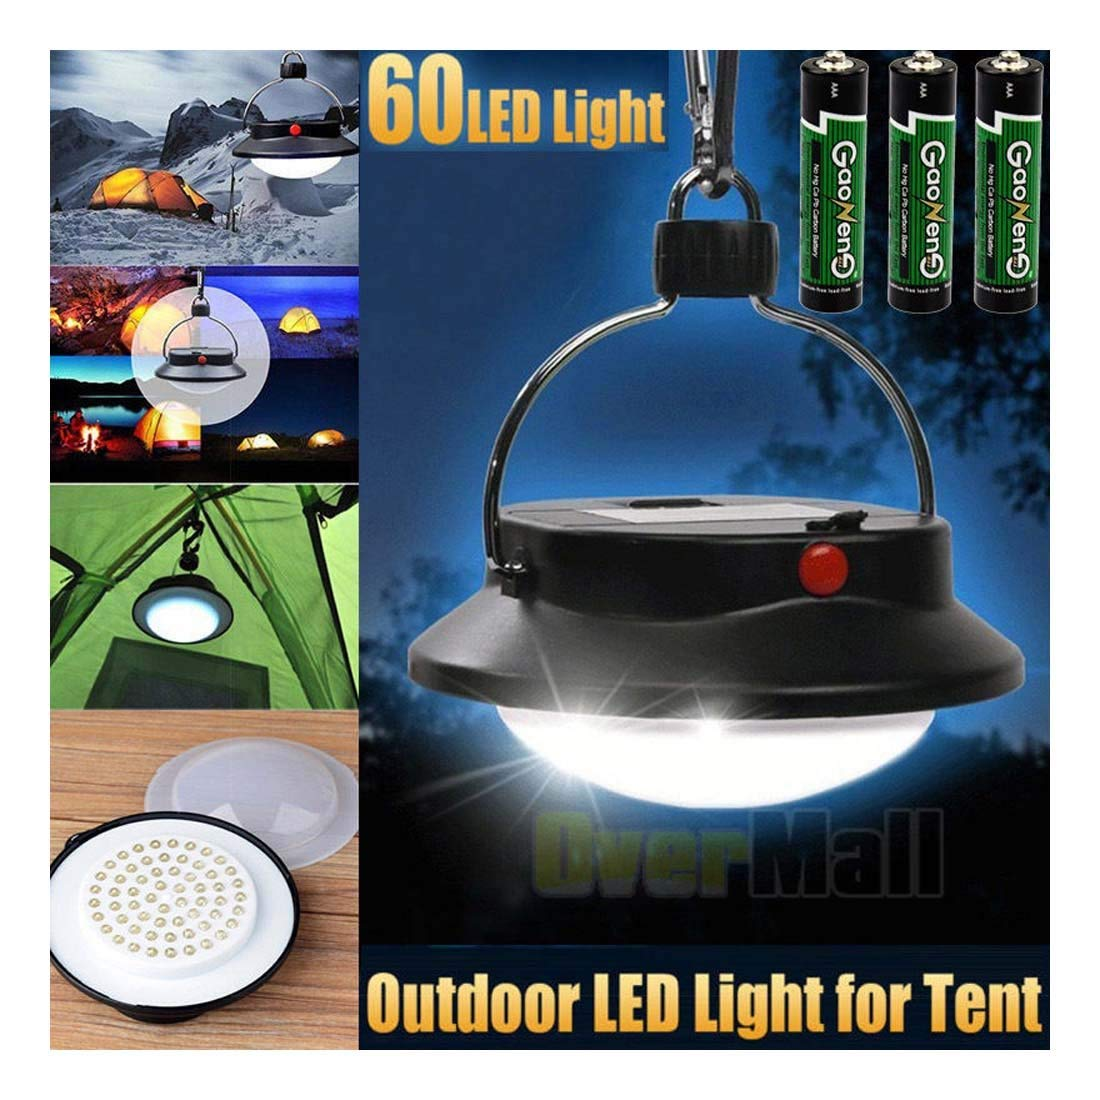 60 LED Portable Rechargable Tent Night Light Lantern Camping Outdoor Lamp - Size: 11.5cm x 5.5cm approx